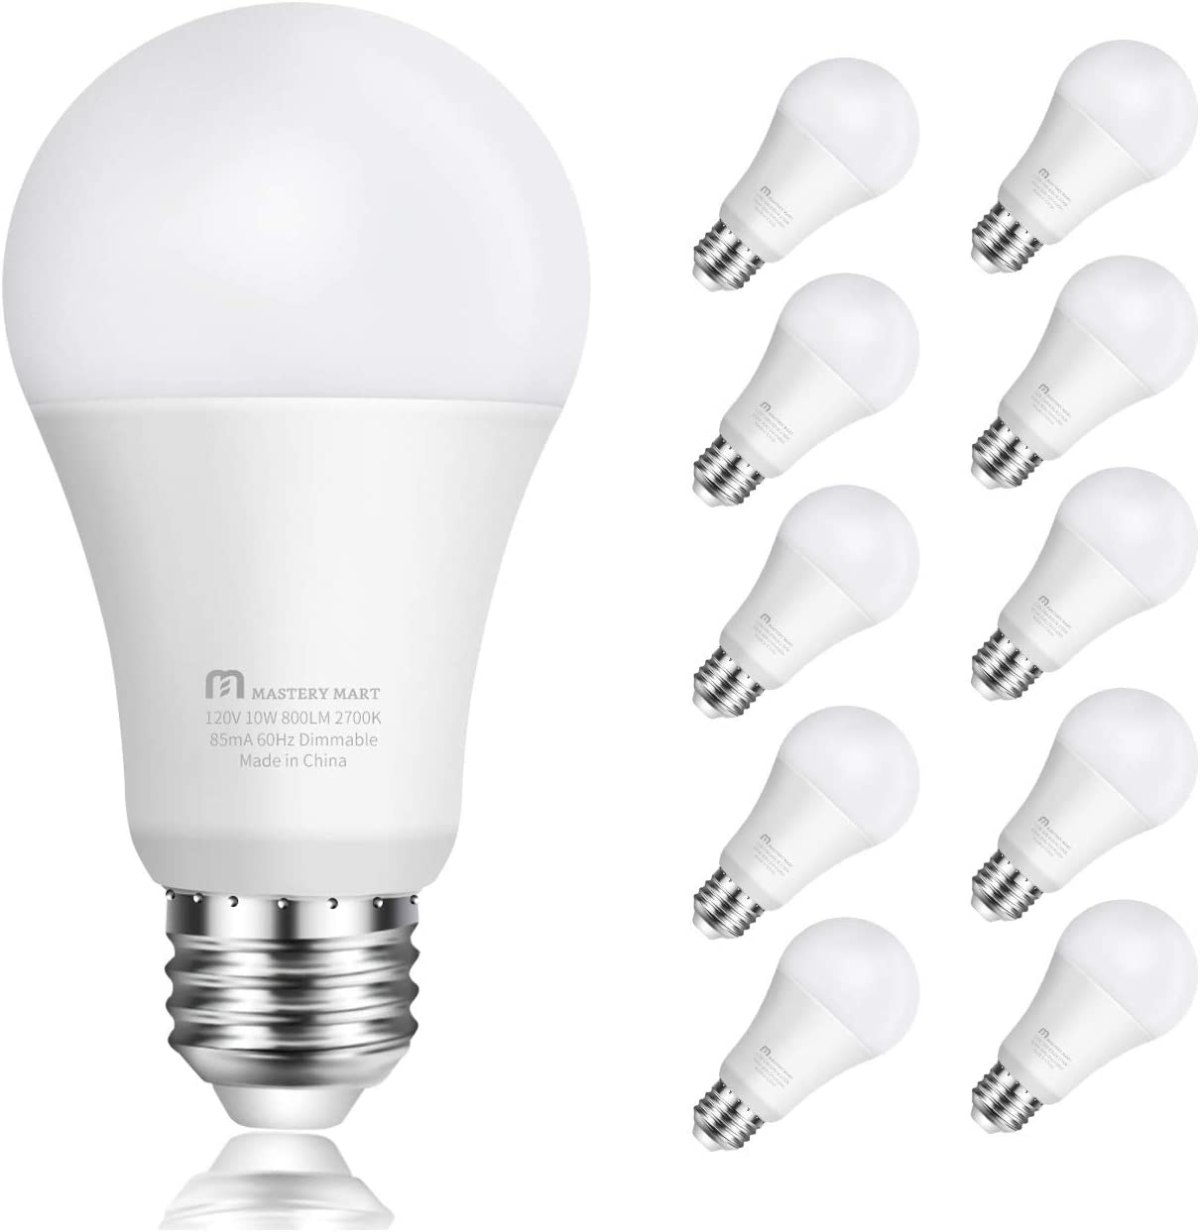 A19 - E26 Dimmable UL Listed by Mastery Mart